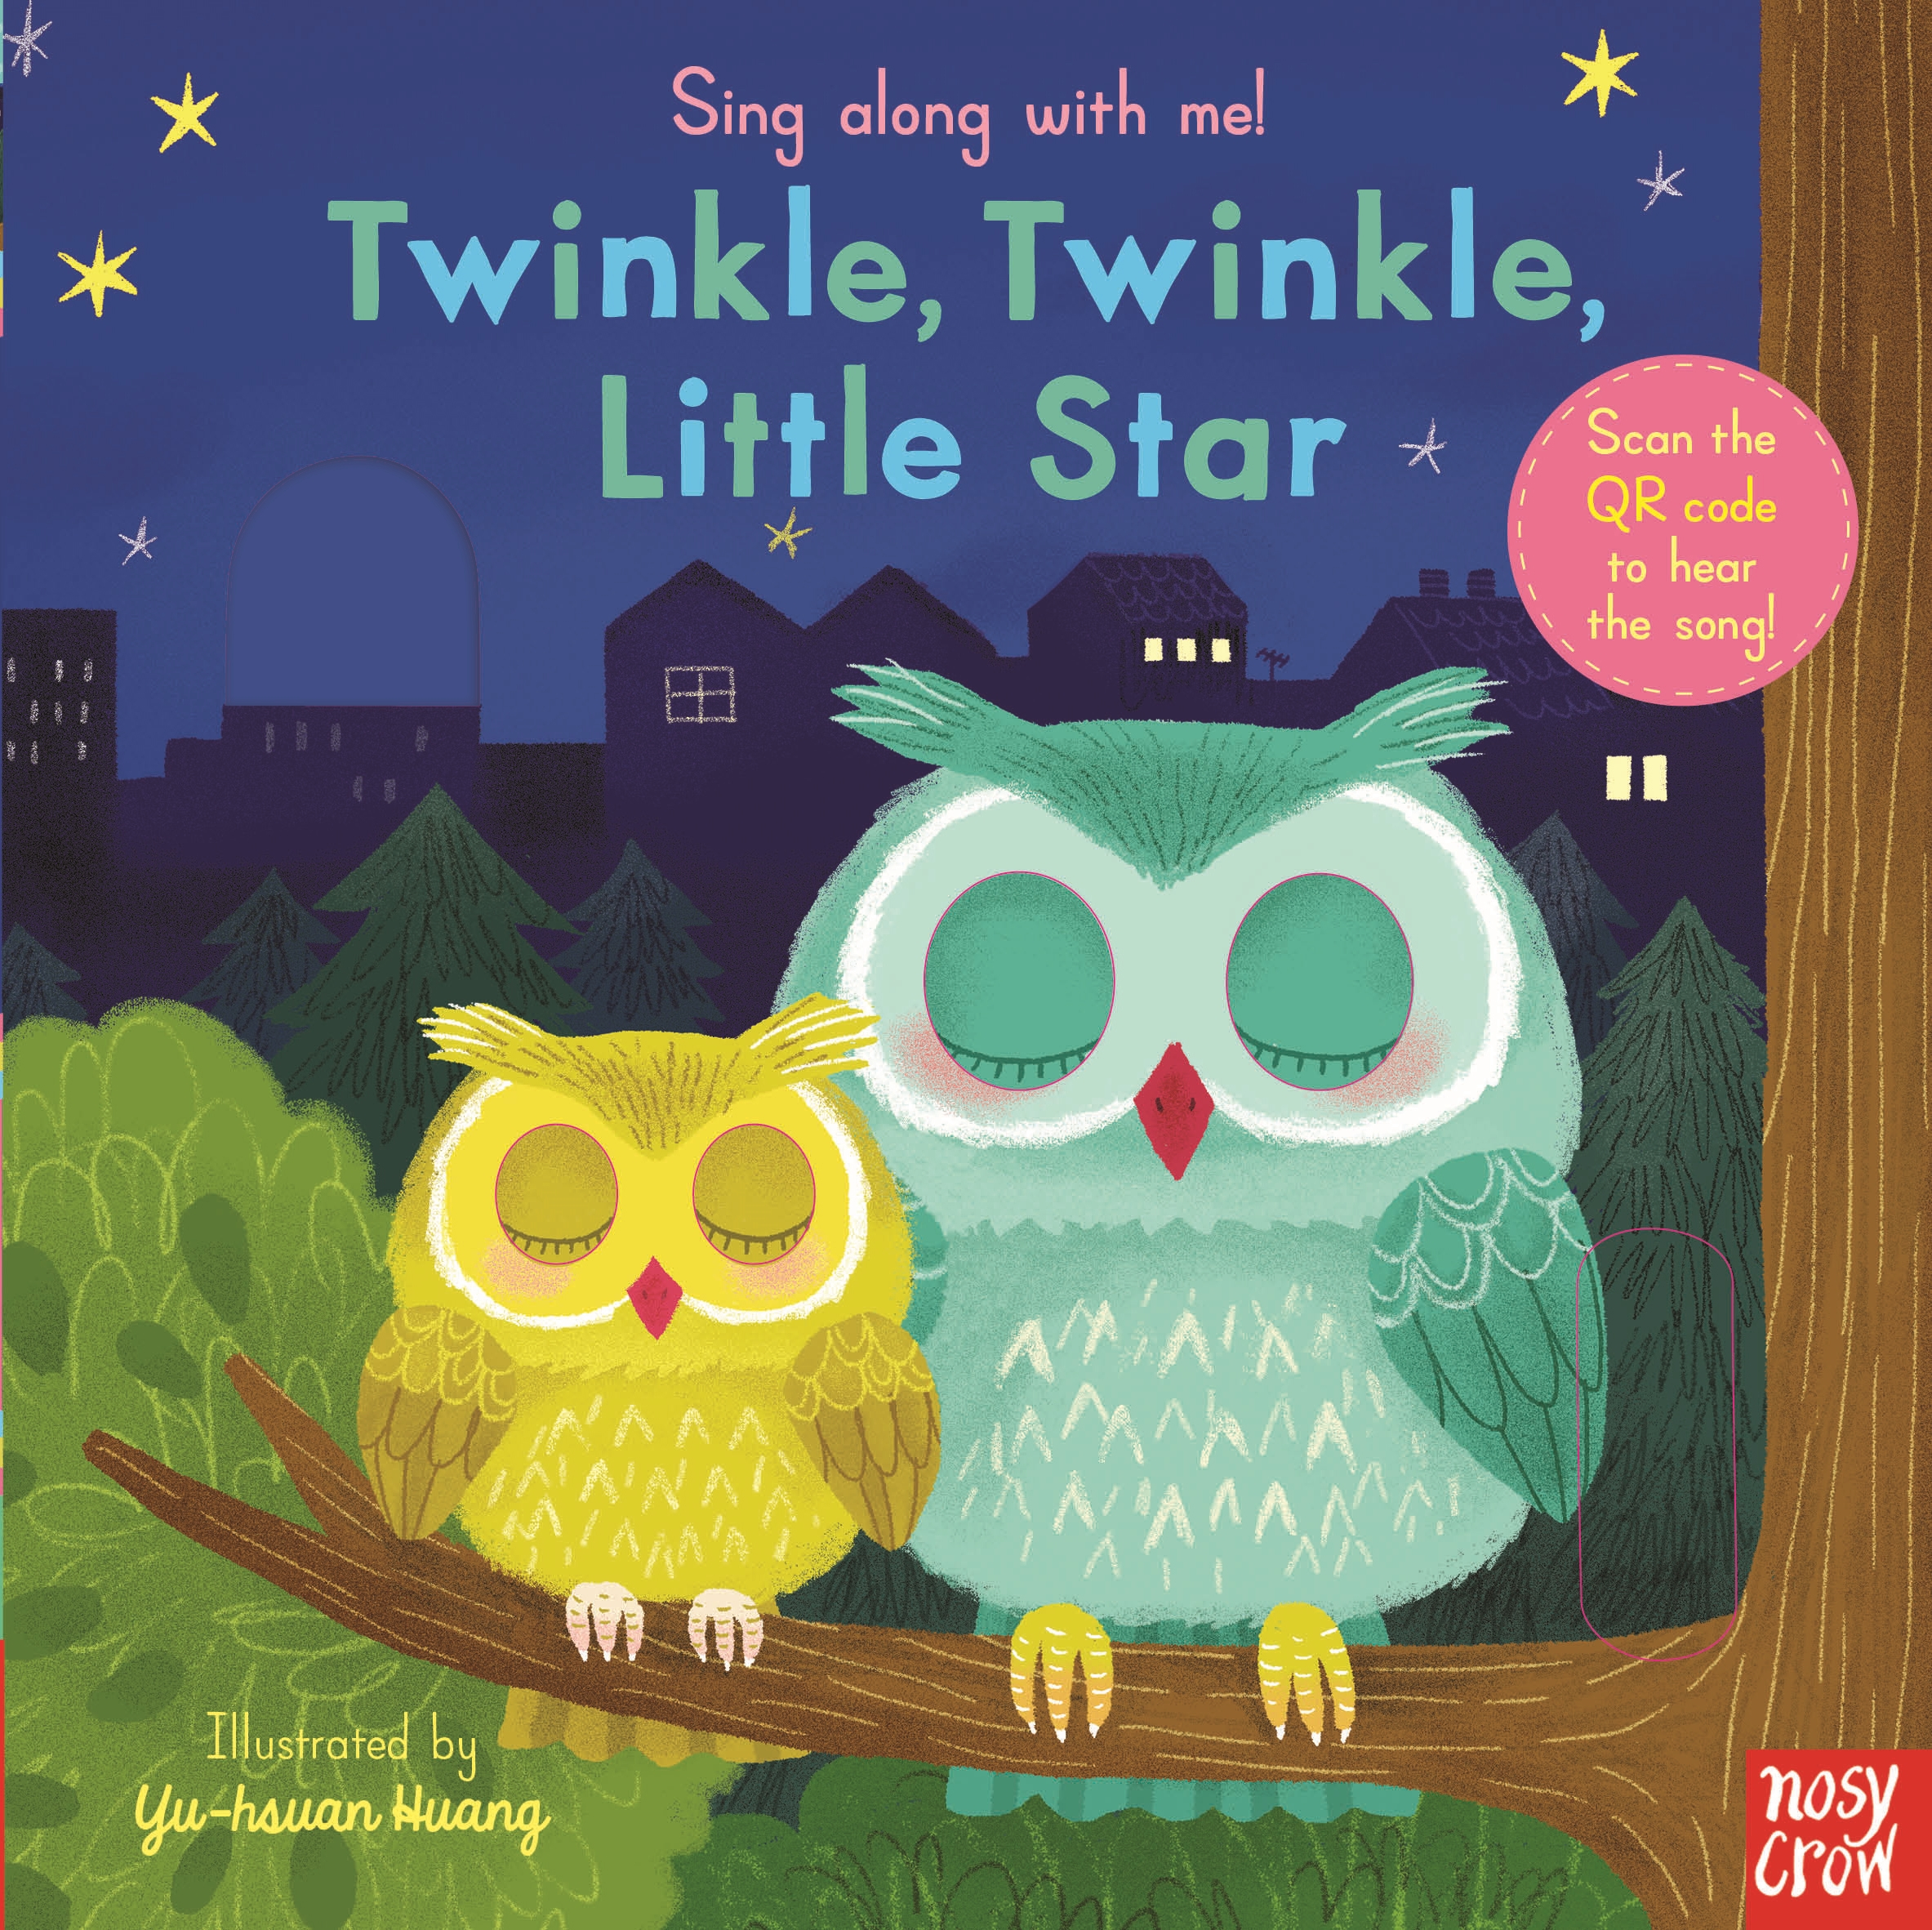 (Sing along with me) Twinkle, Twinkle, Little Star